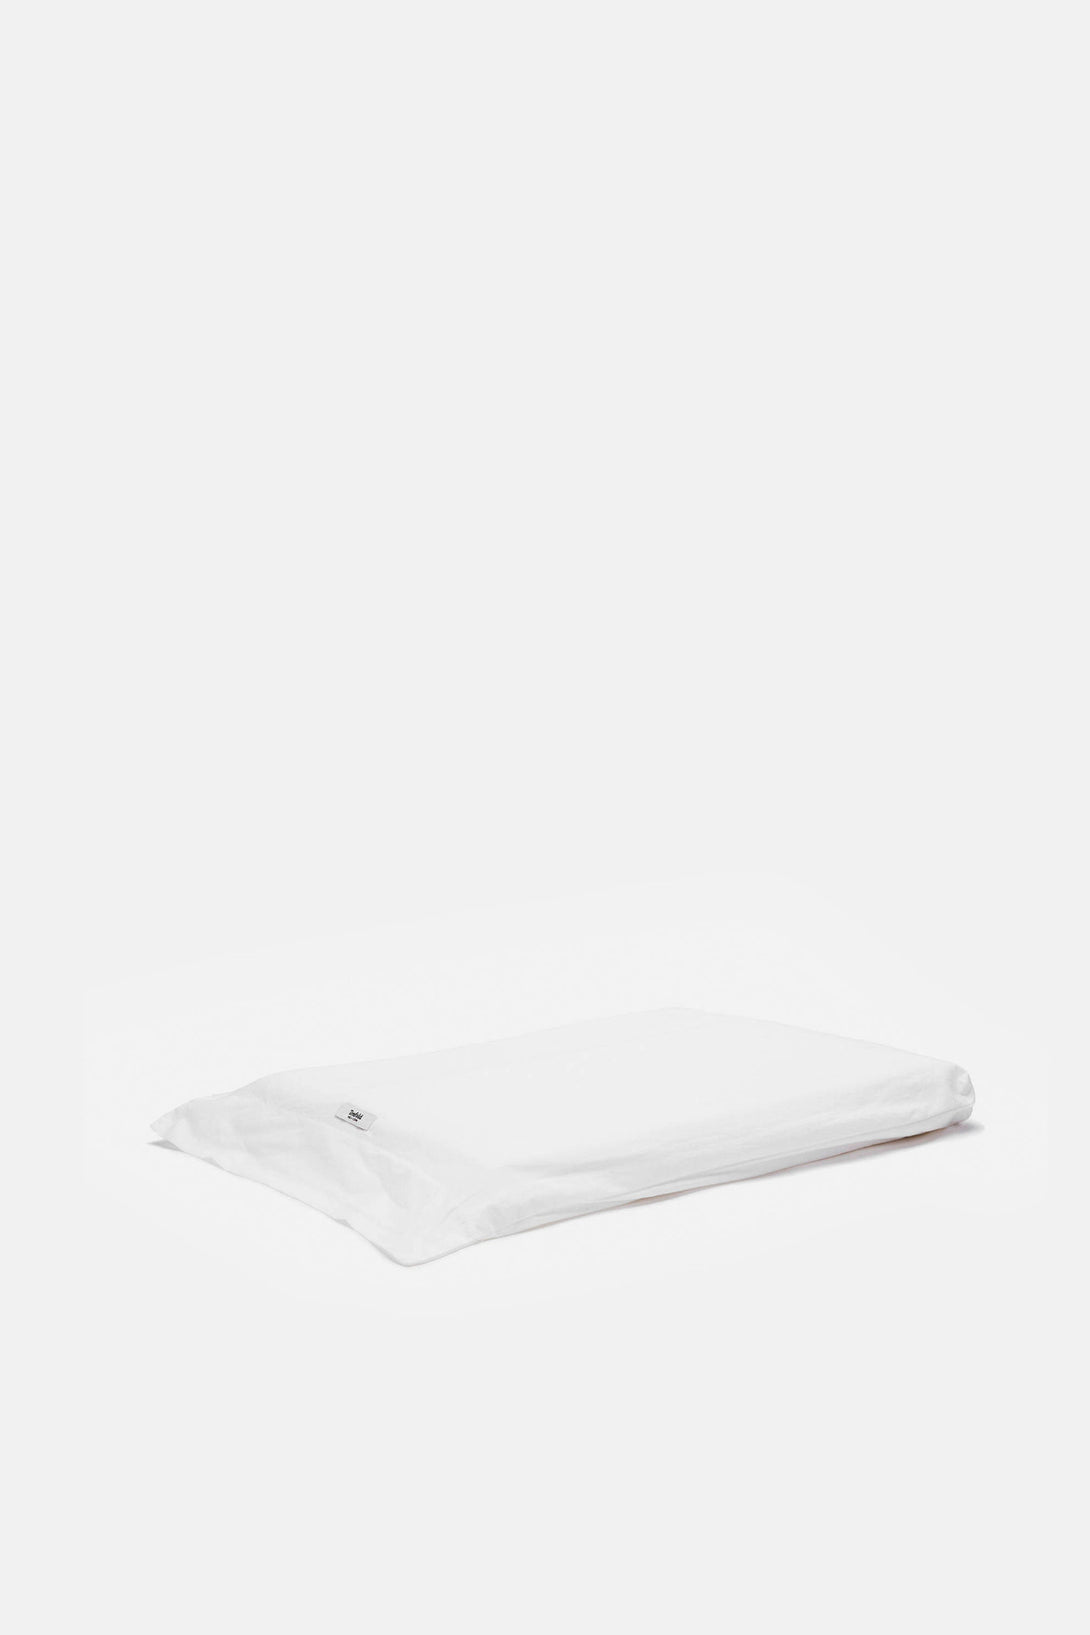 Washed Percale Full/Queen Flat Sheet - White